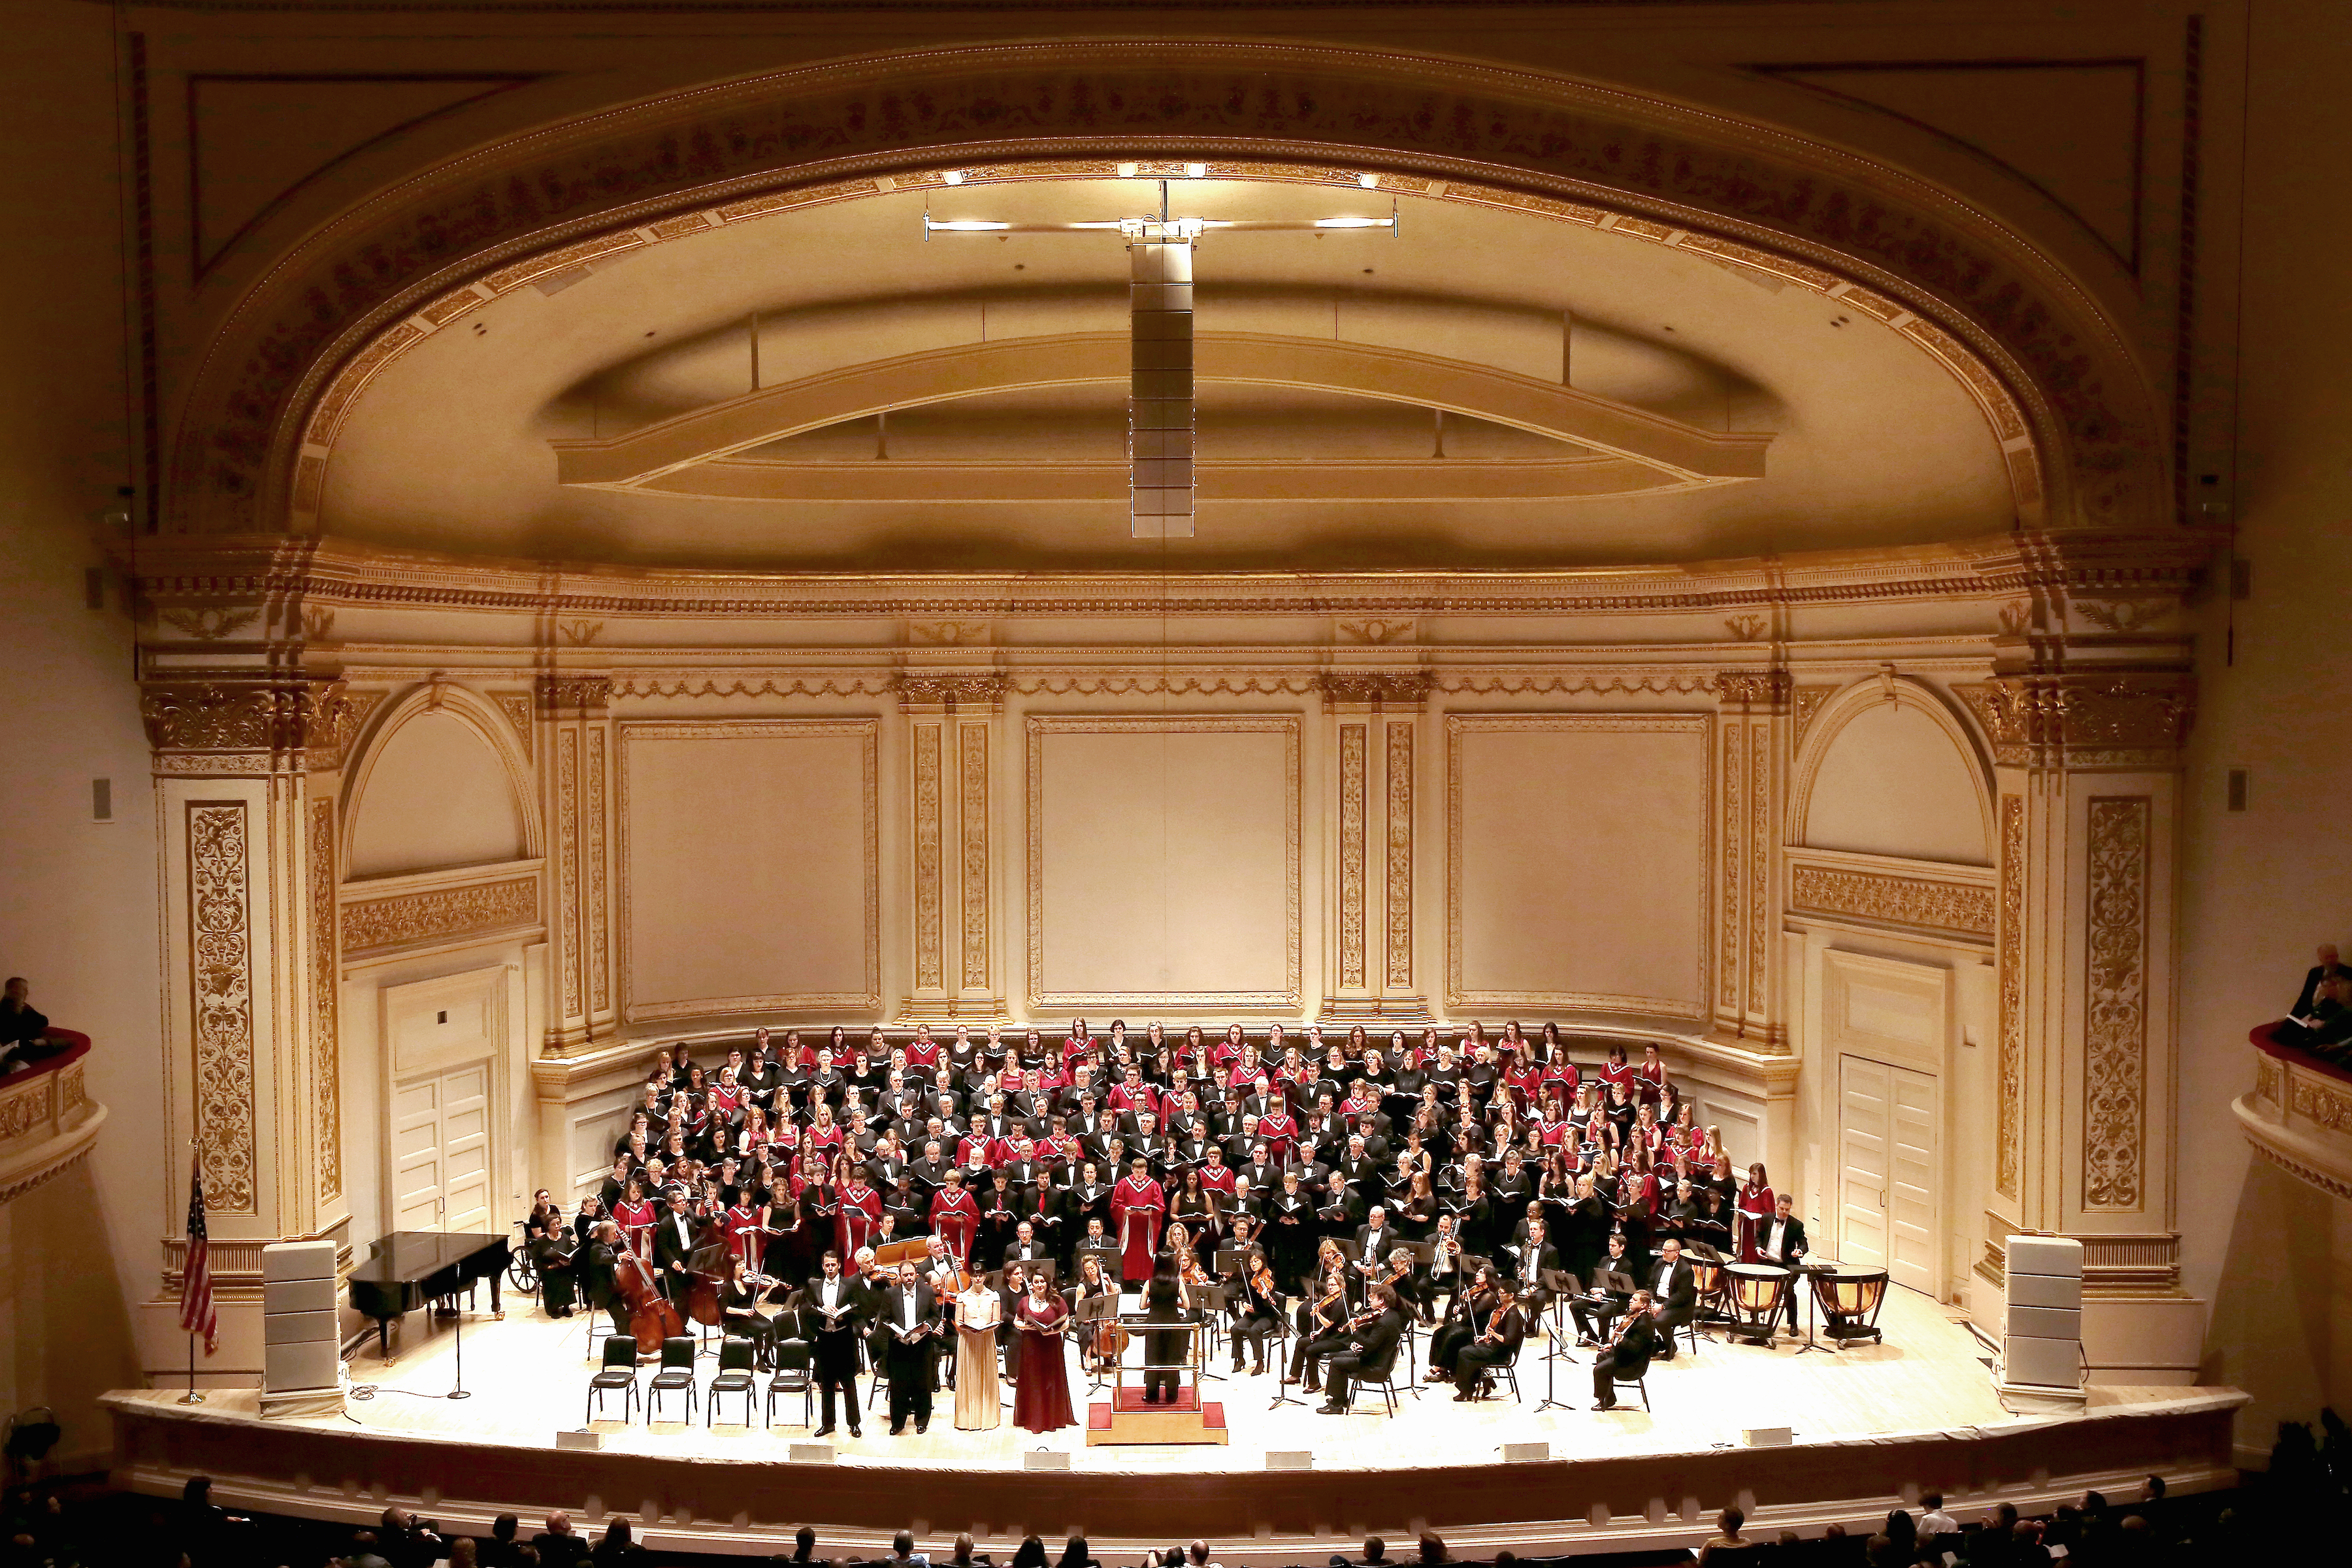 ChamberMusicNY: Free Chamber Music Concerts in New York City